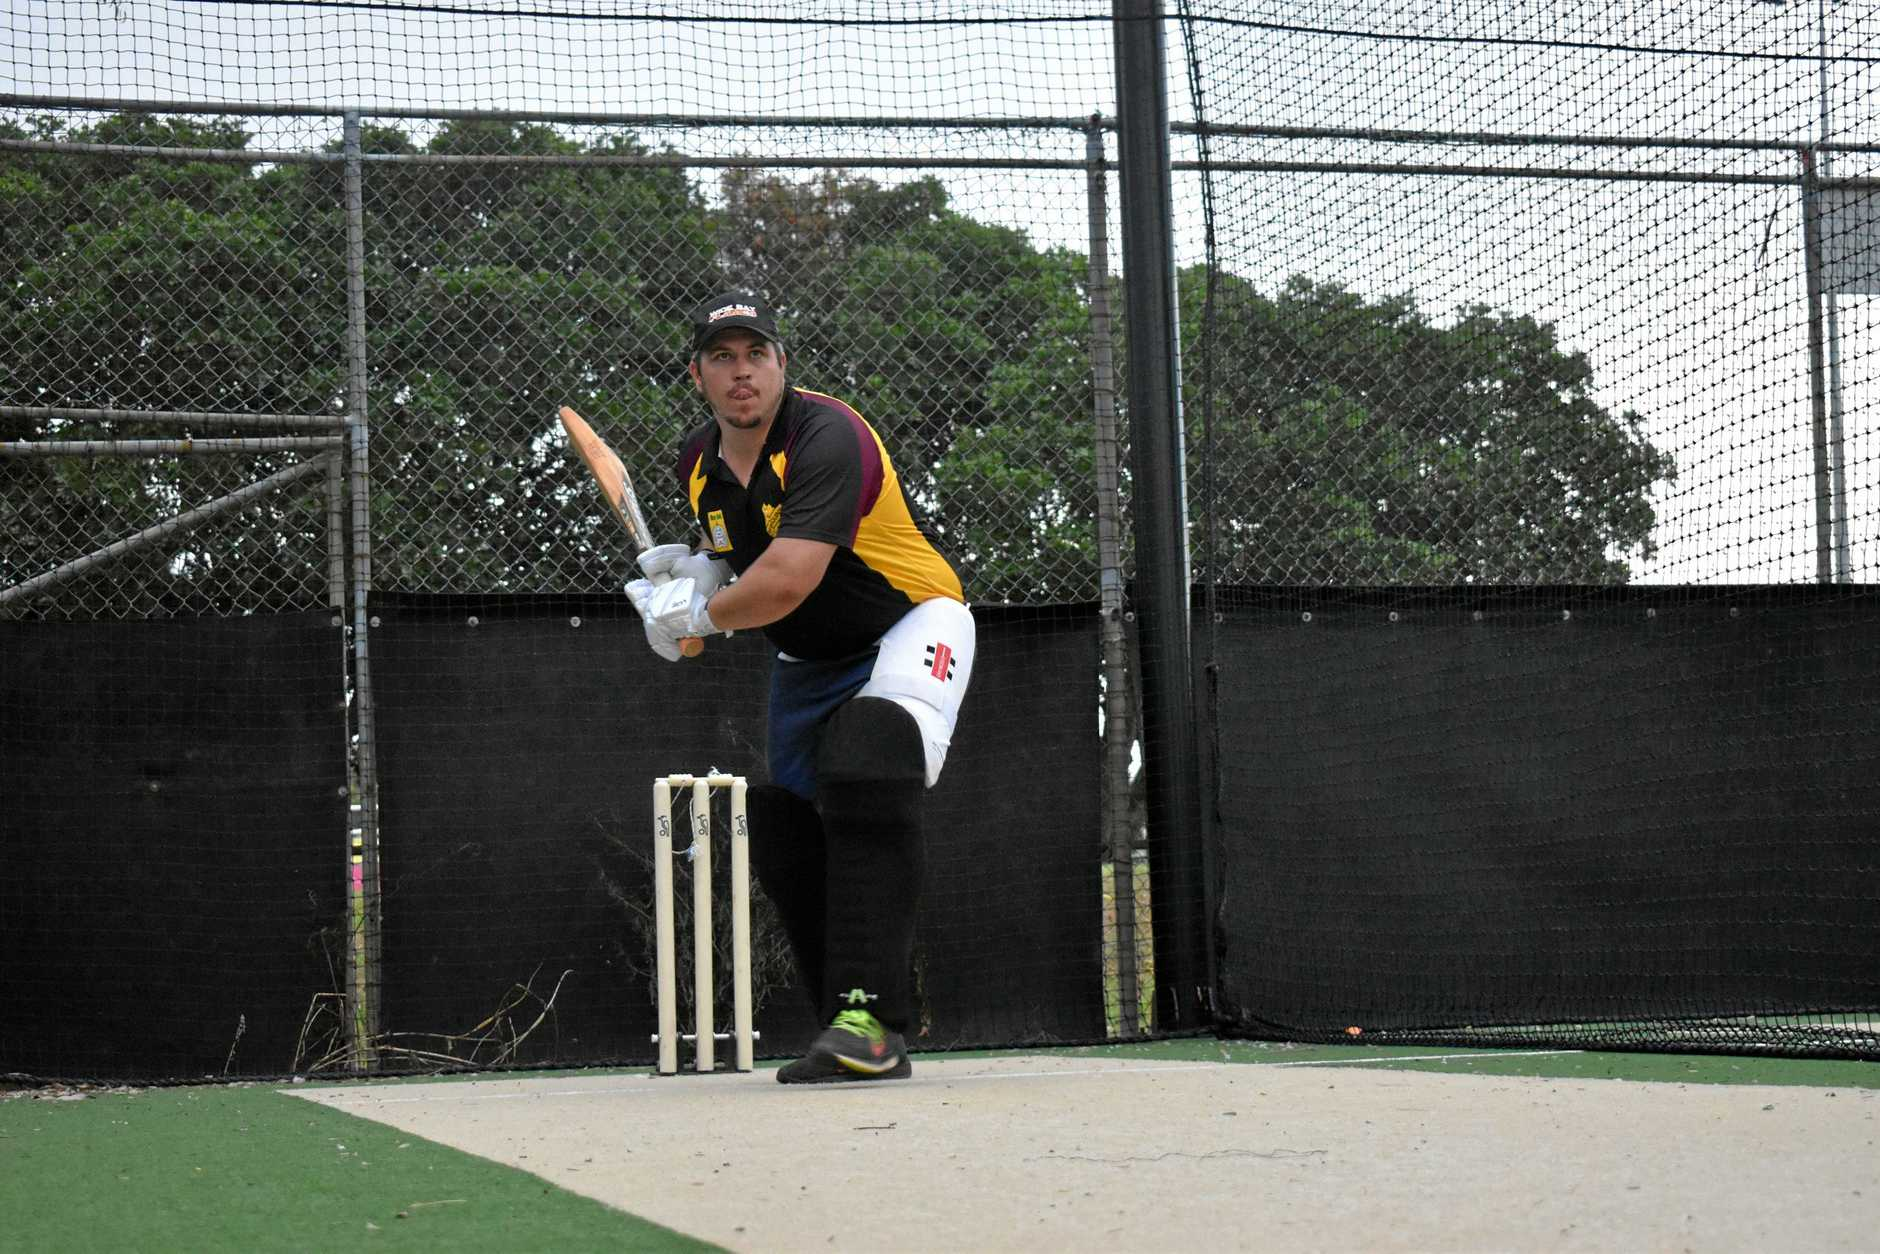 Cricket - Harlequins batting all-rounder Andy Batten is the next Player of the Week.